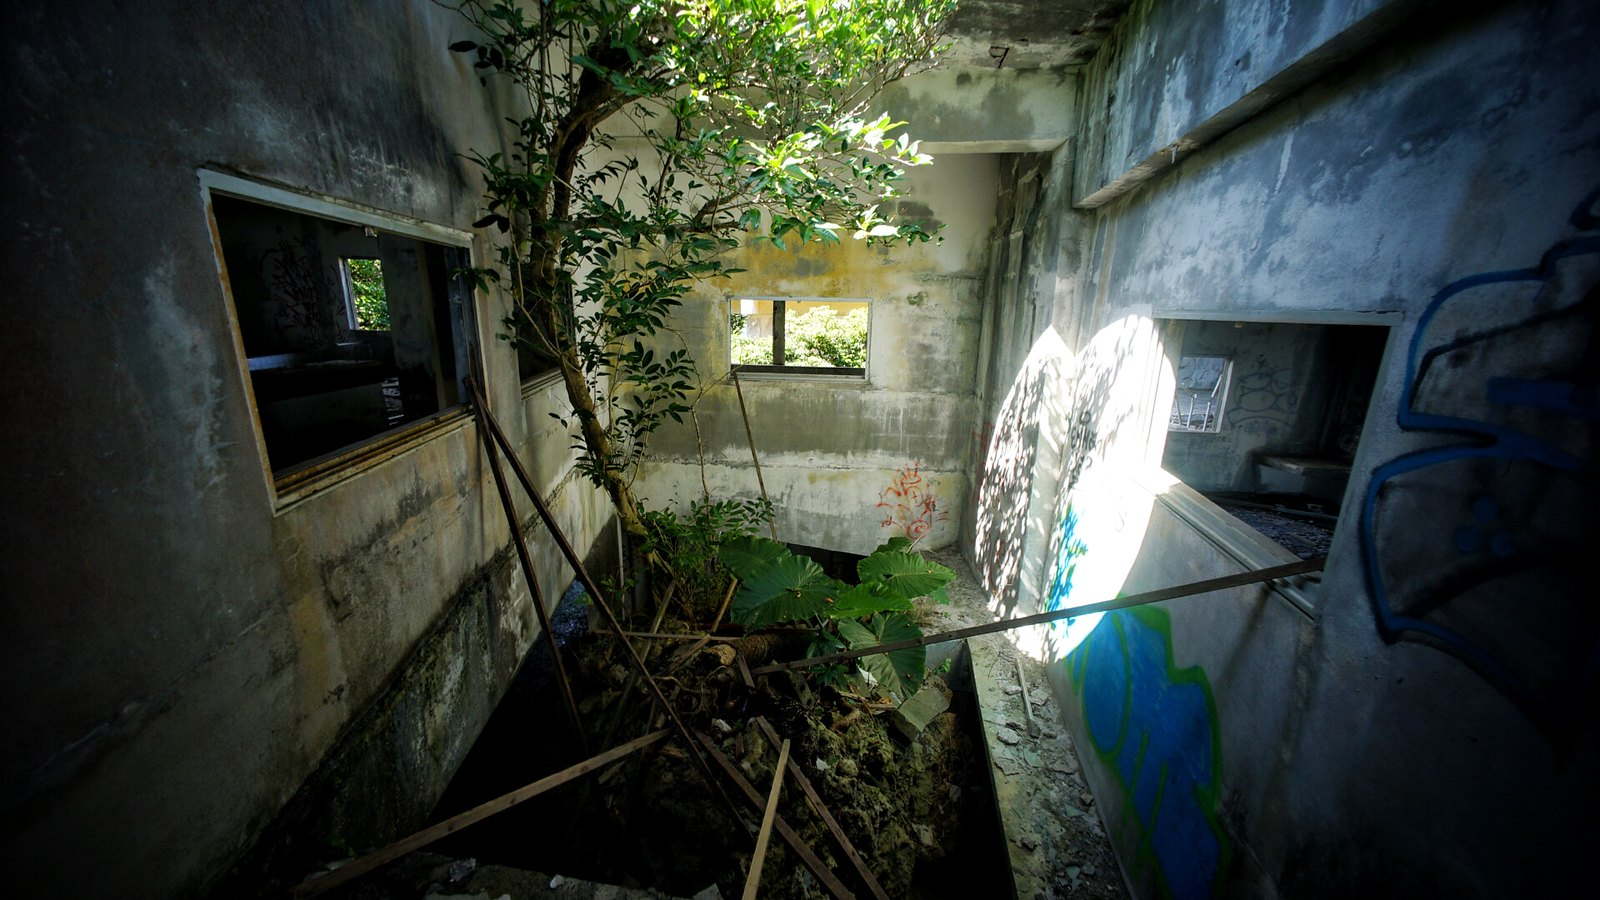 Just a little urbex while on holiday in Okinawa.